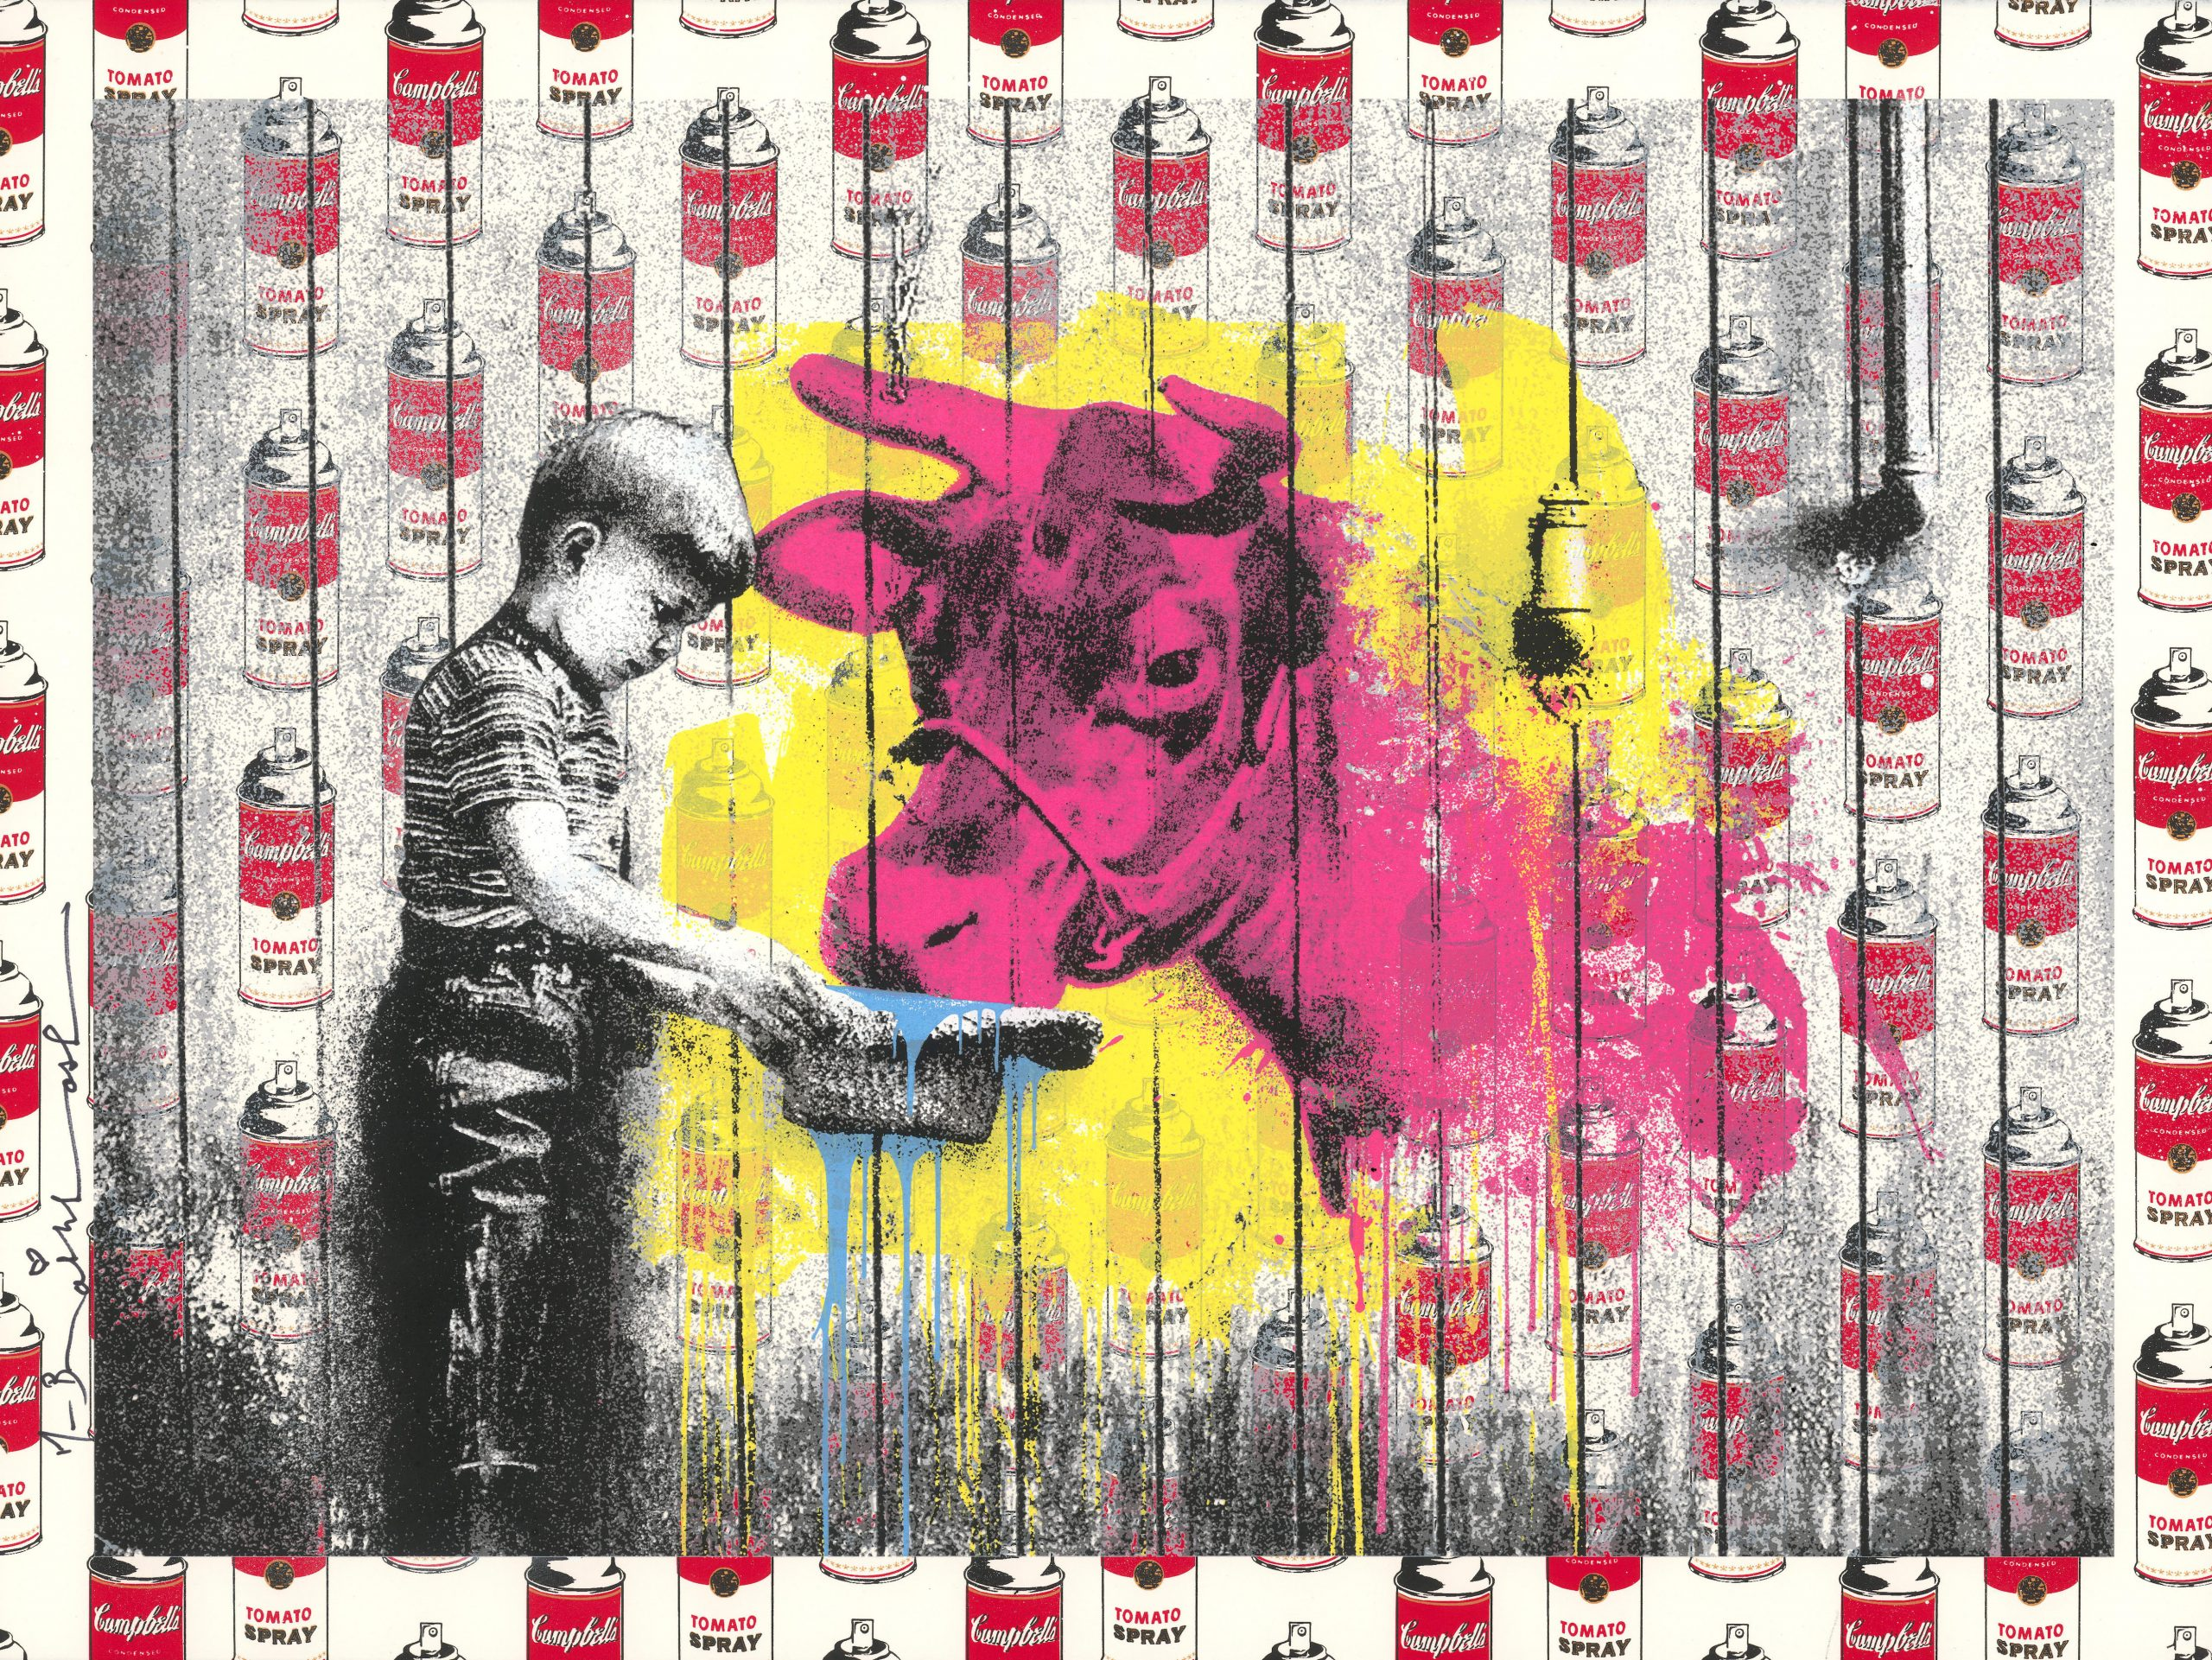 Soup Can Edition: You Get What You Give I by Mr. Brainwash